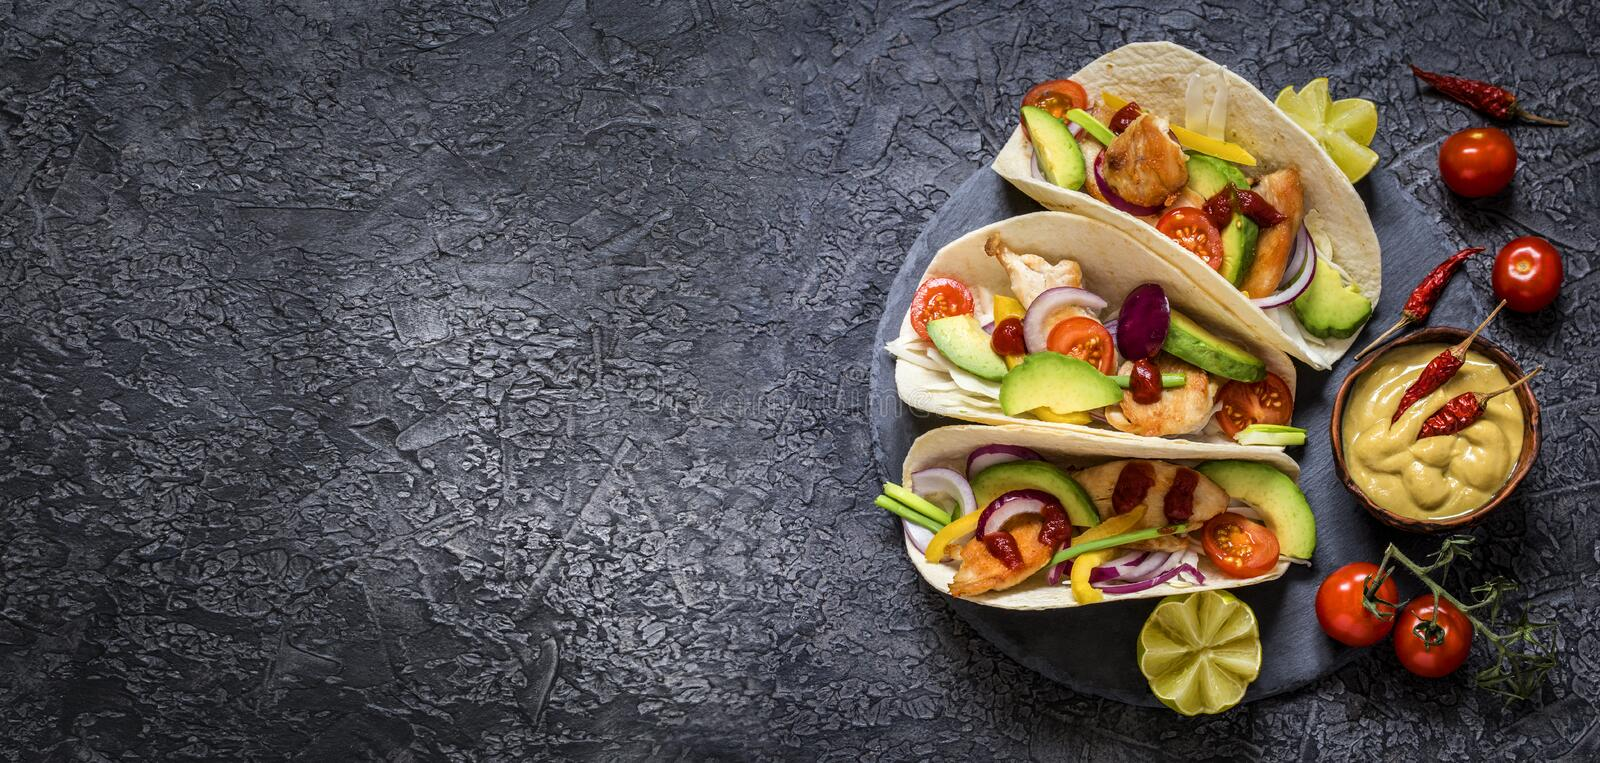 Mexican food tacos, fried chicken, greens,  avocado, pepper, red cabbage and avocado in tortillas stock photography